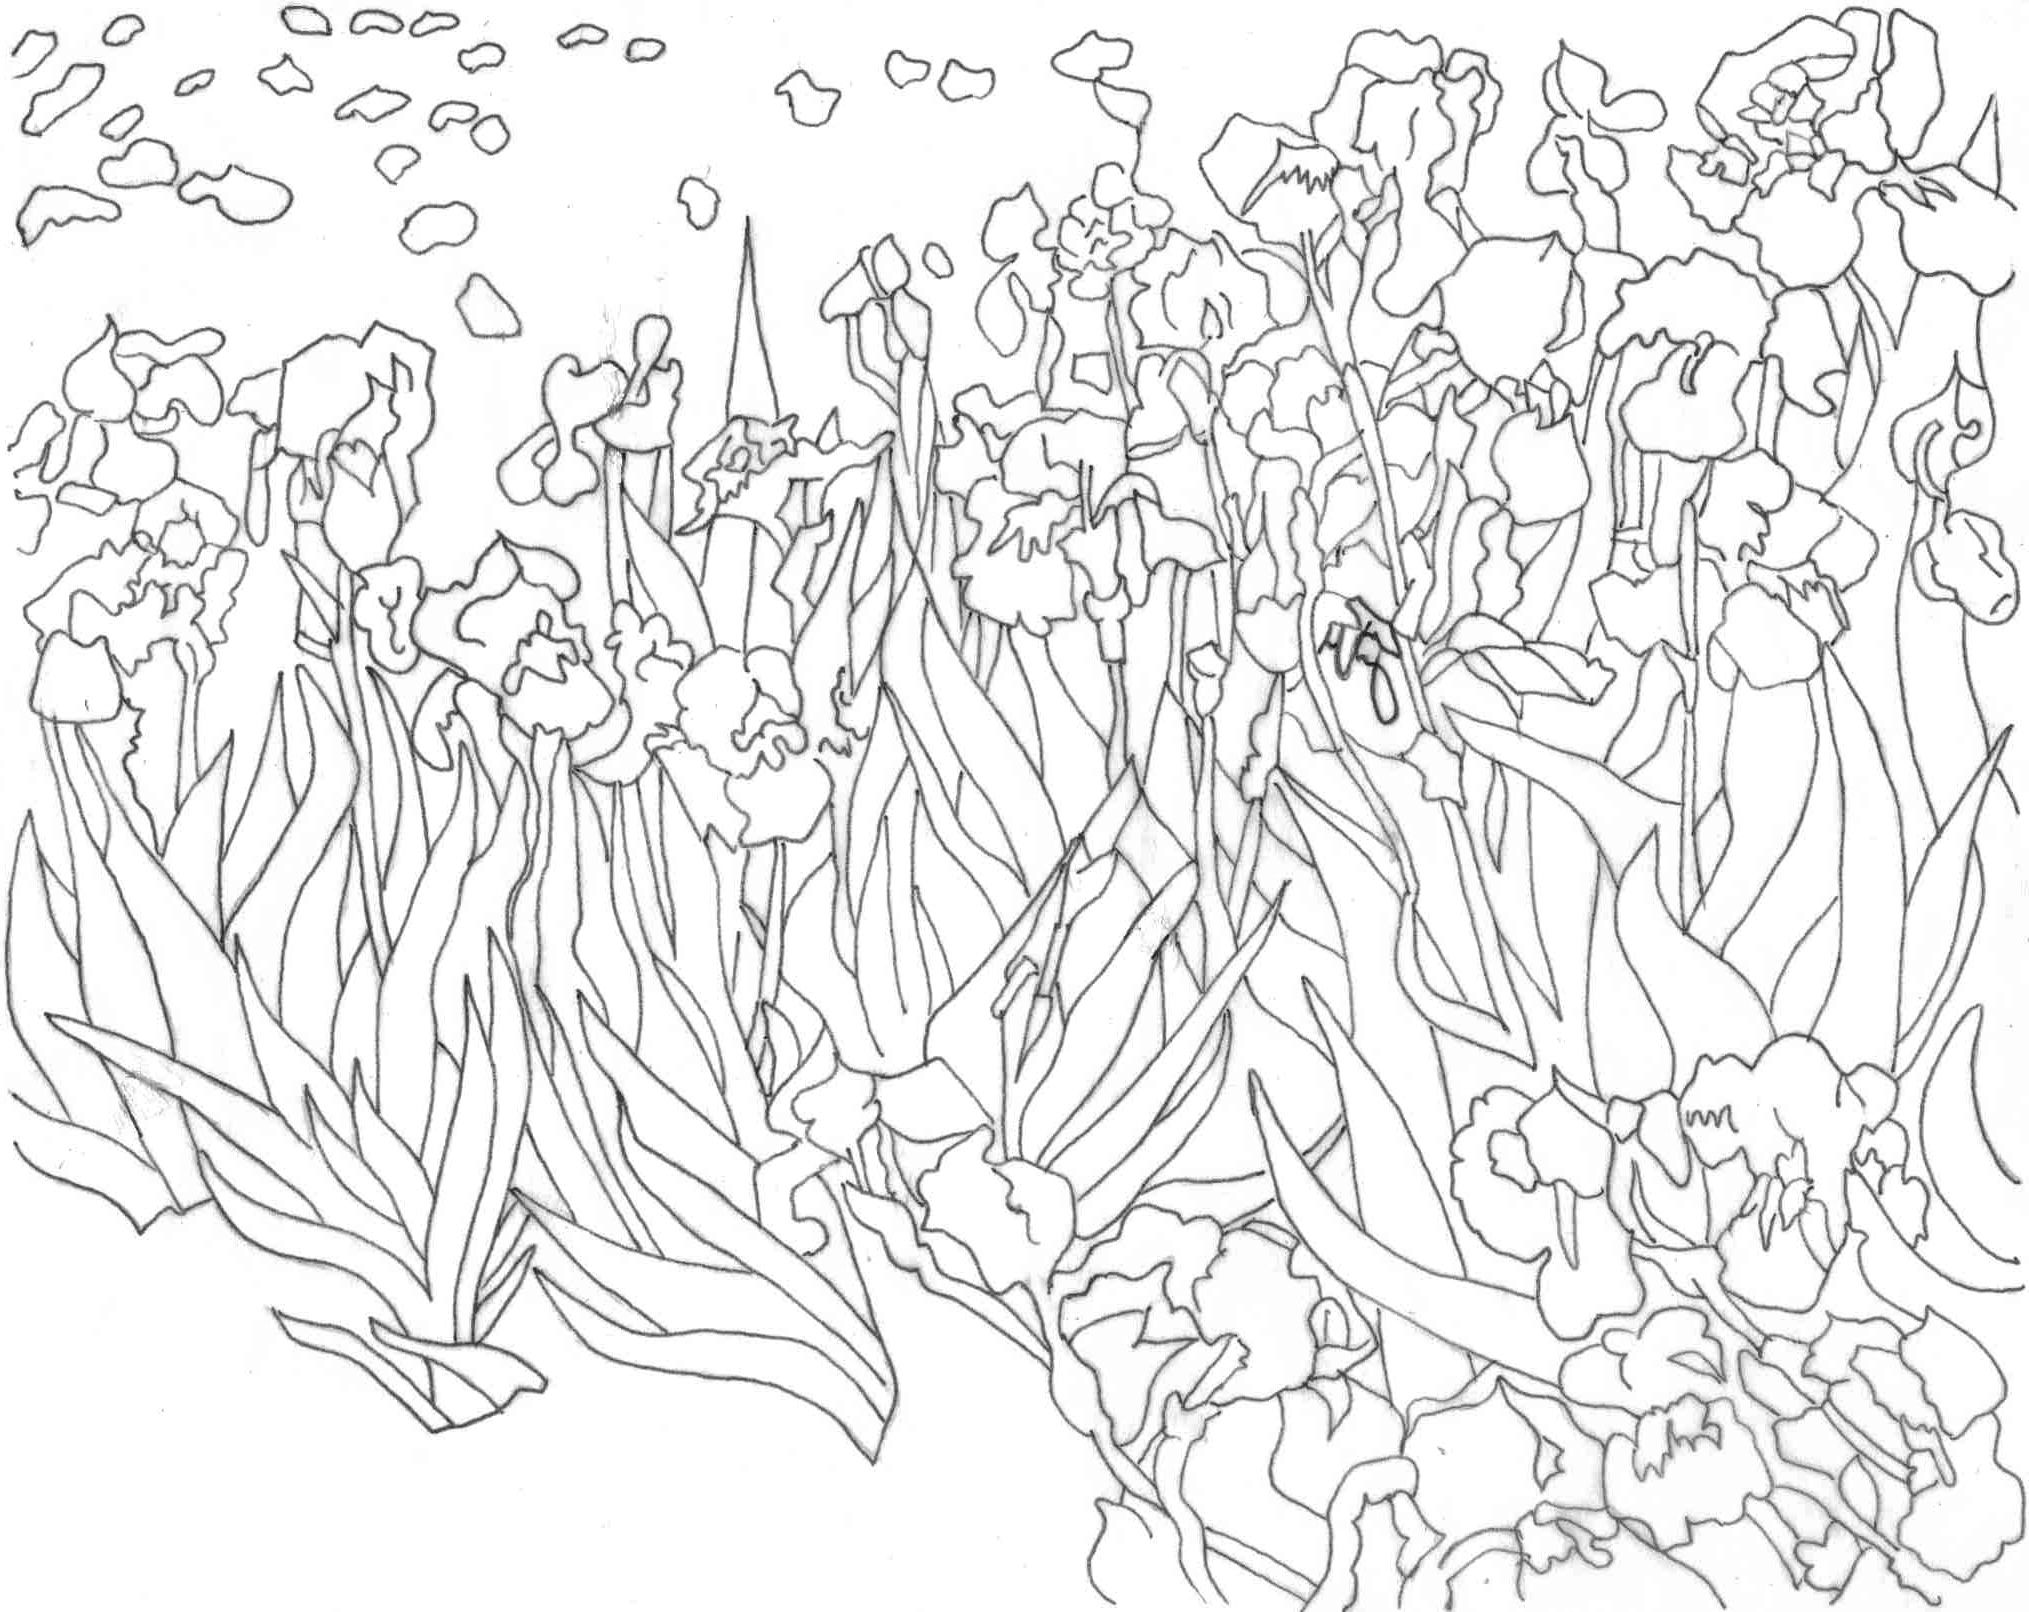 Coloring Page Van Gogh S Irises Amazing Wiz Kids Van Gogh Irises Van Gogh Coloring Sunflower Coloring Pages